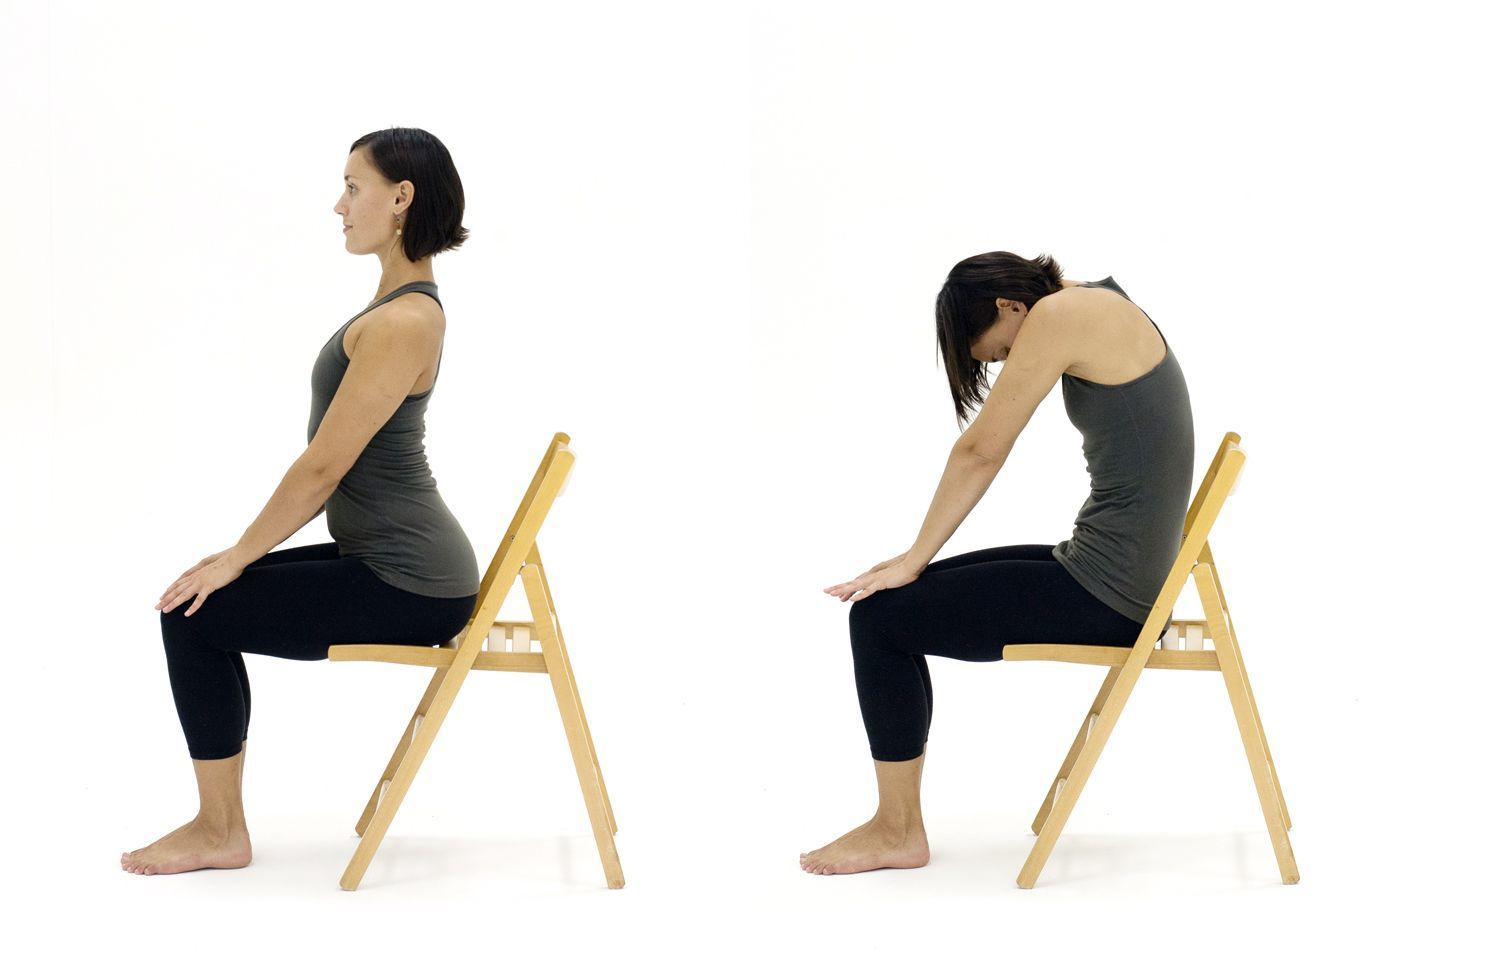 setting pose, chair pose